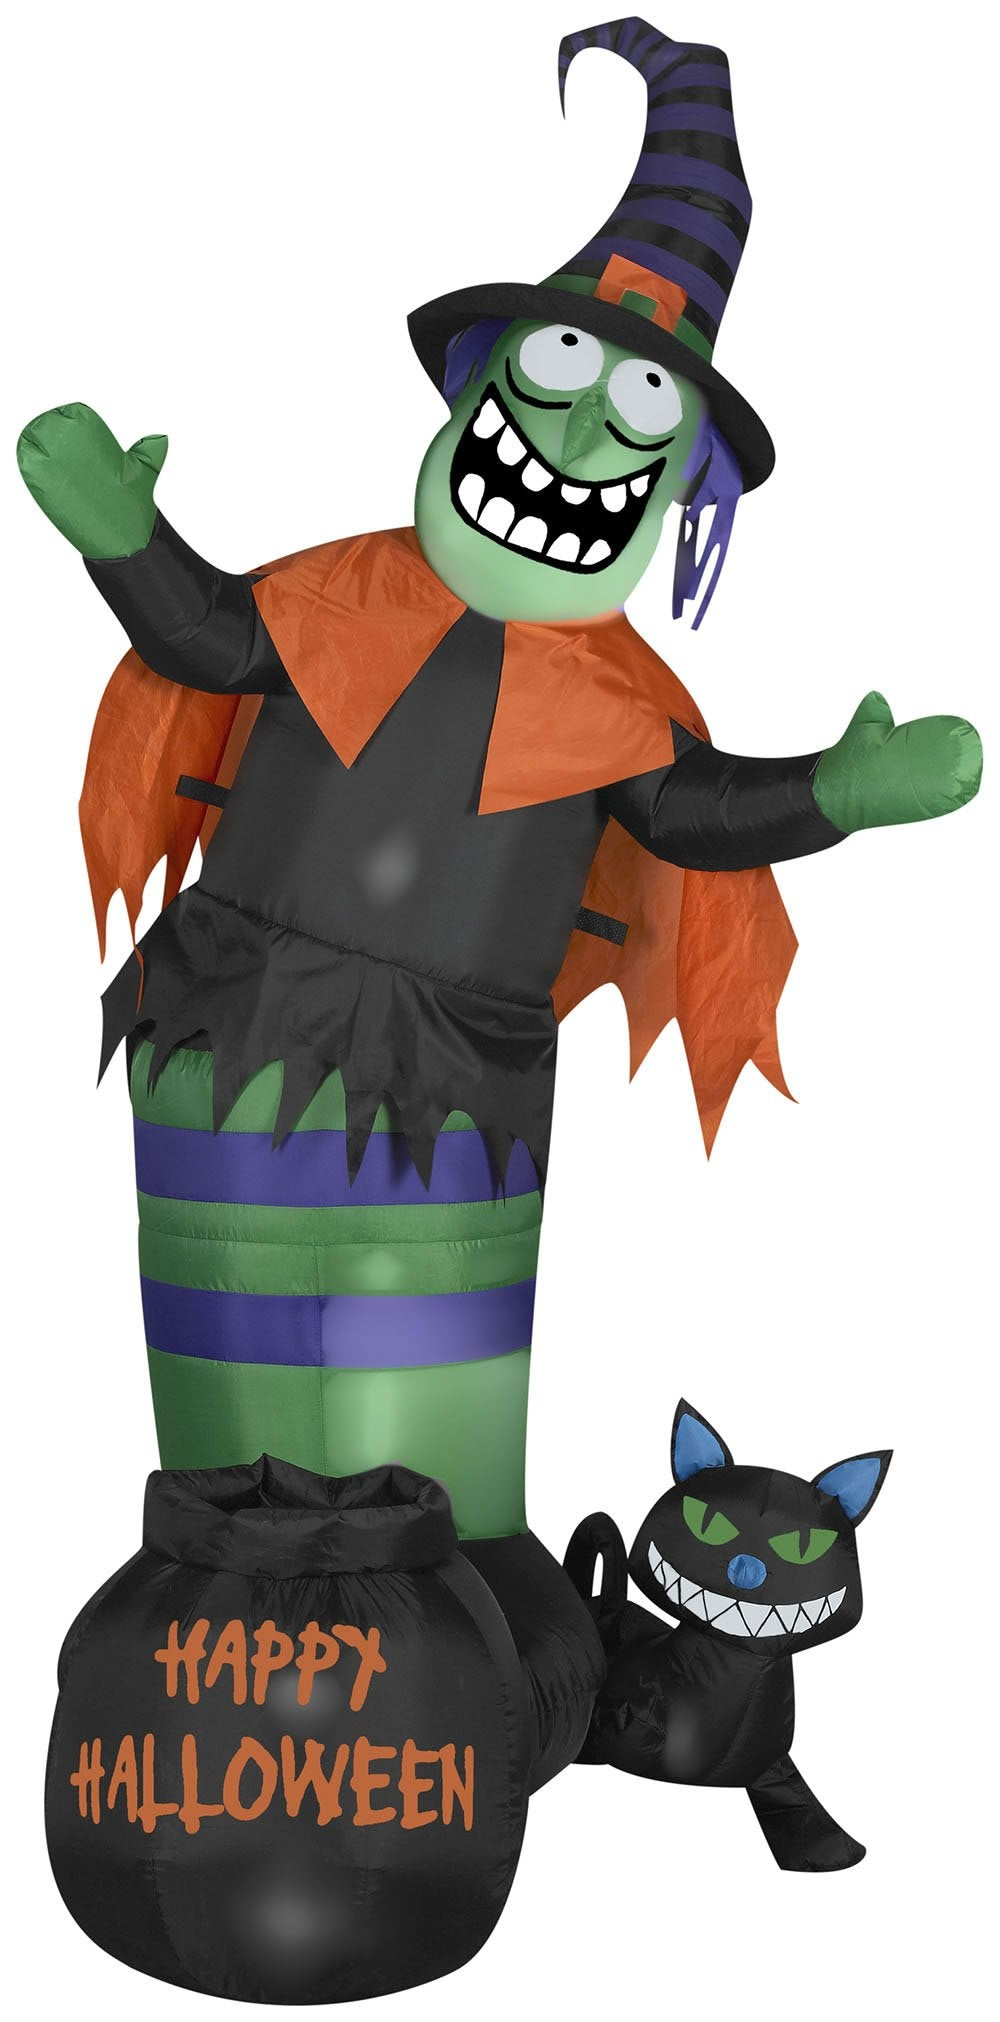 5.5' Animated Airblown Wobbling Witch Scene Halloween Inflatable